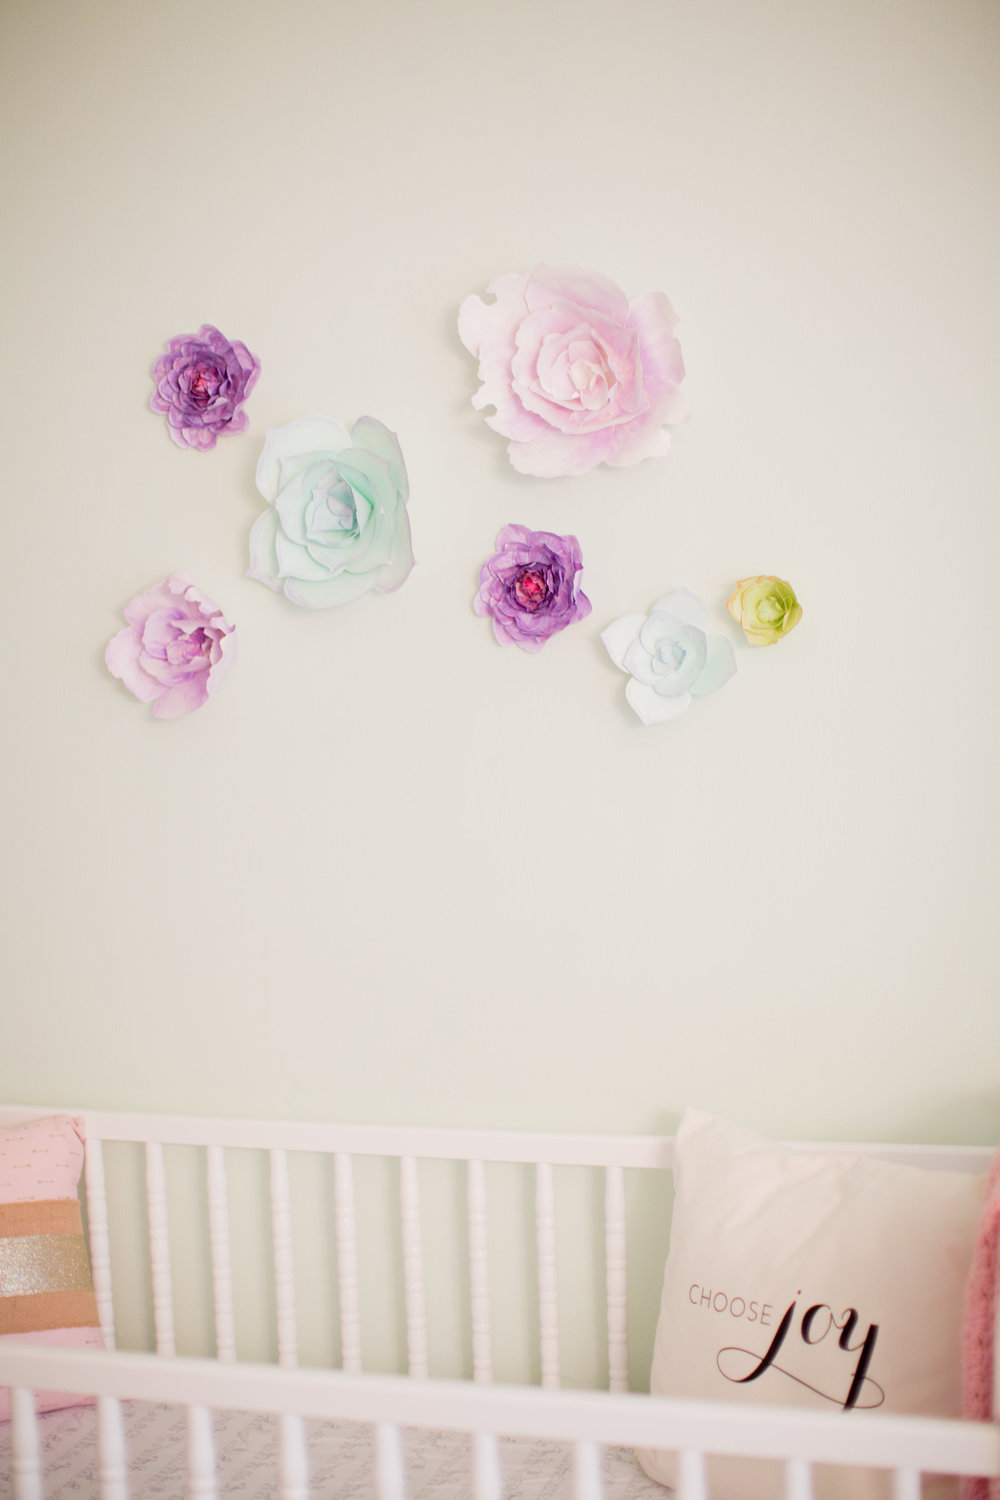 The paper flowers are from  Sweet Pear Paper . My friend, Camberly, made each flower by hand, watercolor painting and all. The Choose Joy pillow was a gift from my friend Sarah.